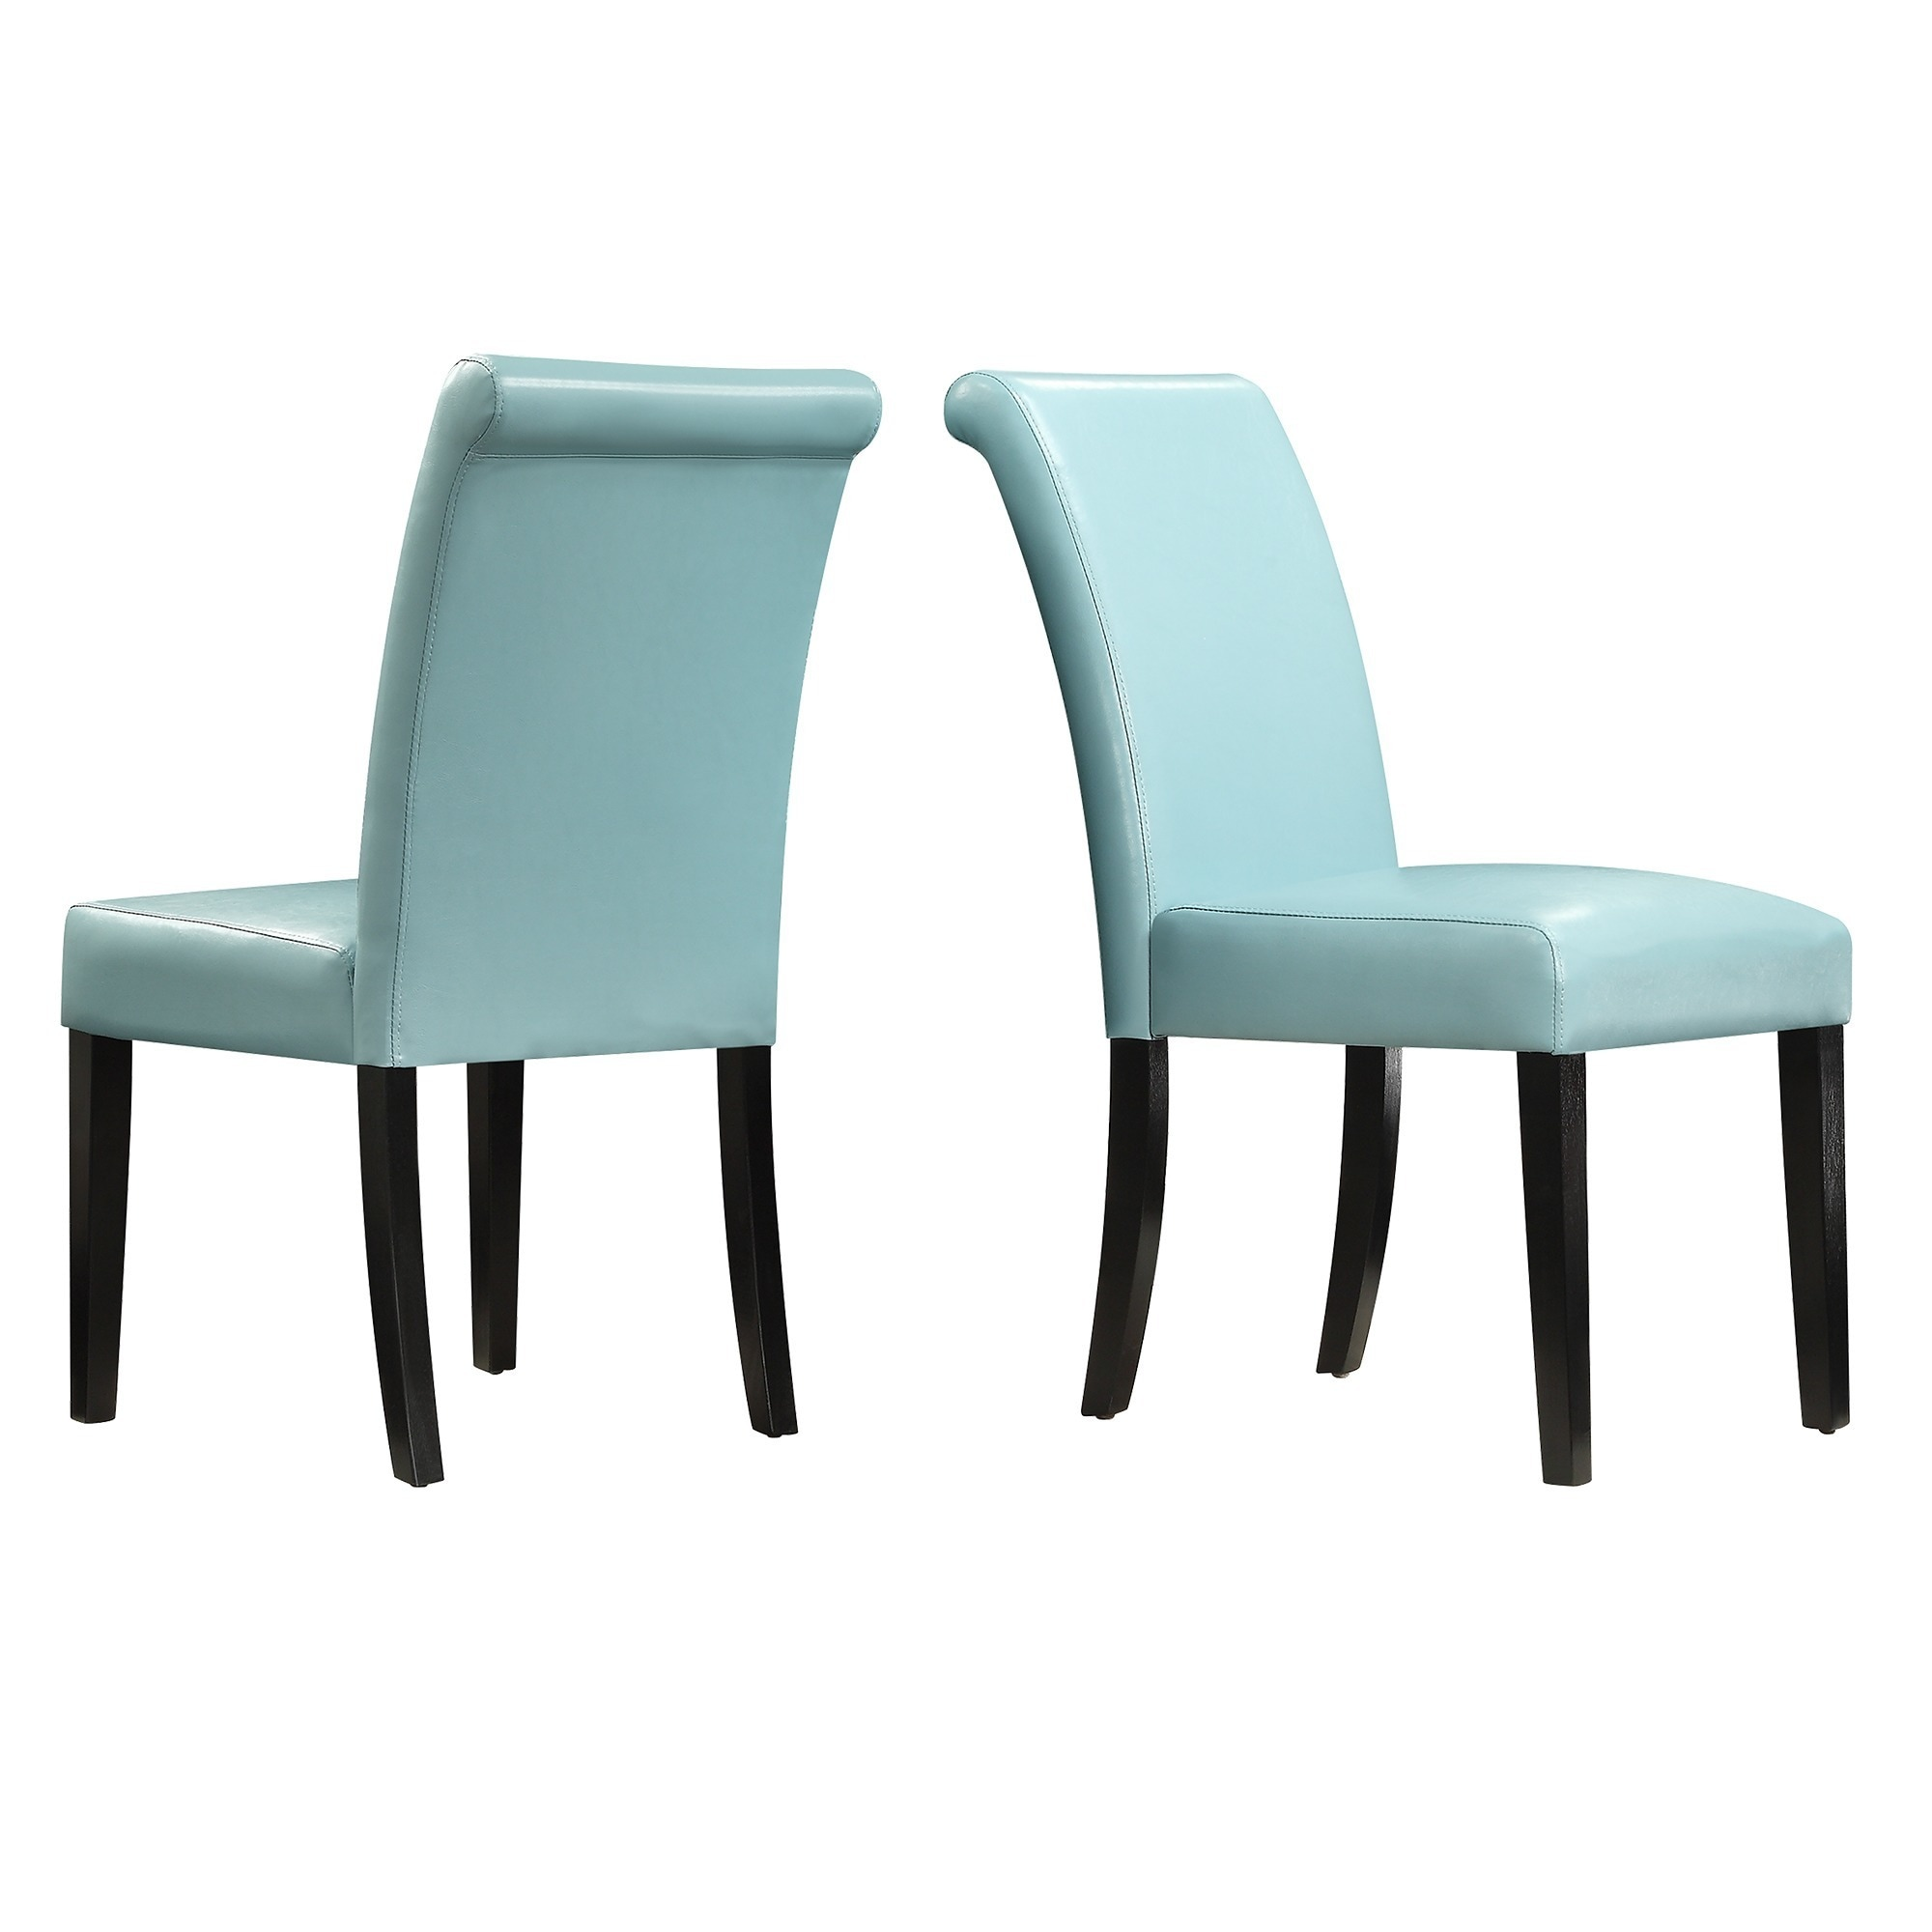 Dorian Faux Leather Upholstered Dining Chair Set of 2 by iNSPIRE Q